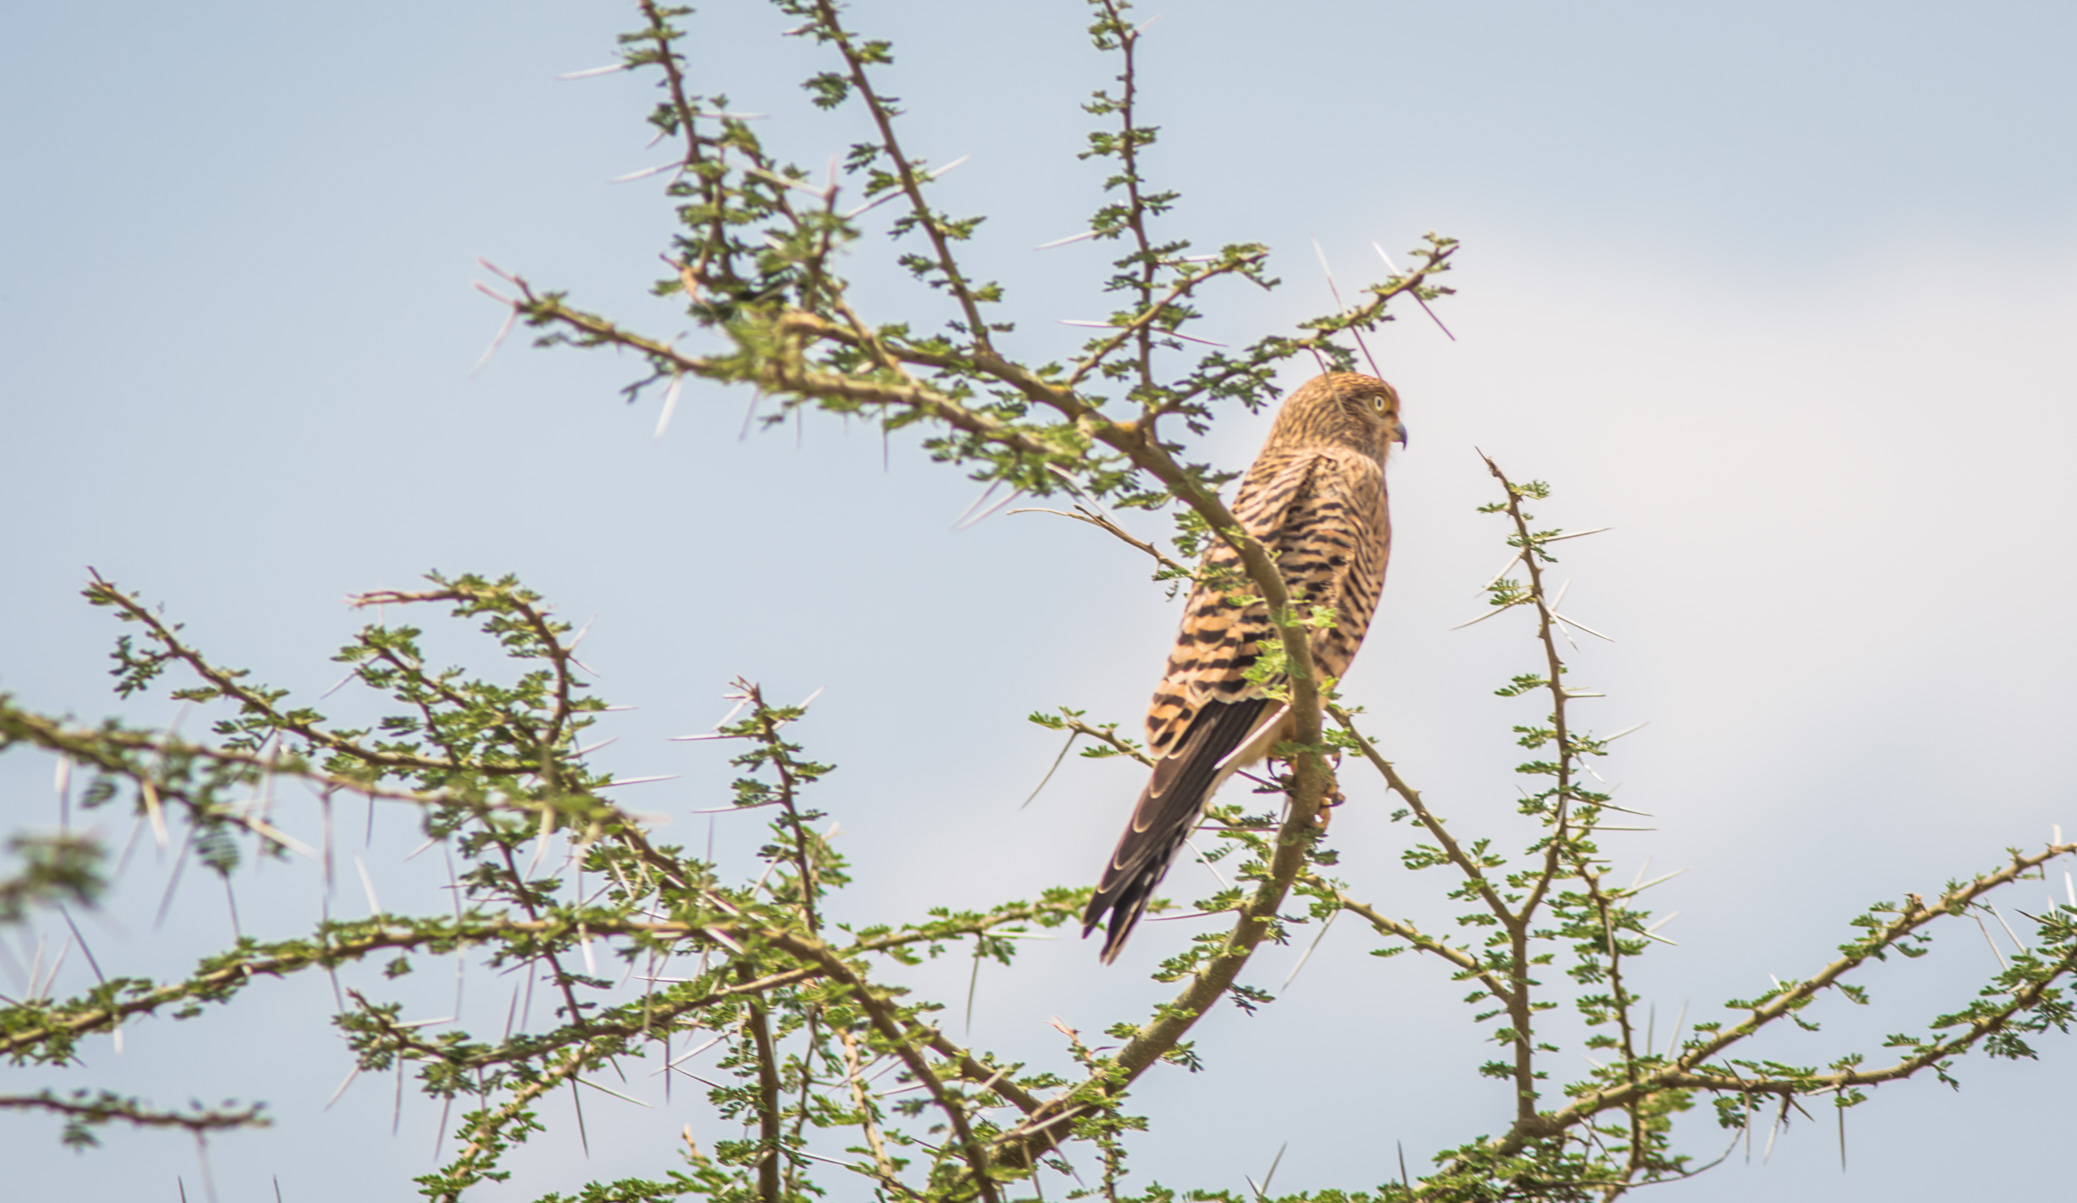 Greater kestrel in Serengeti National Park